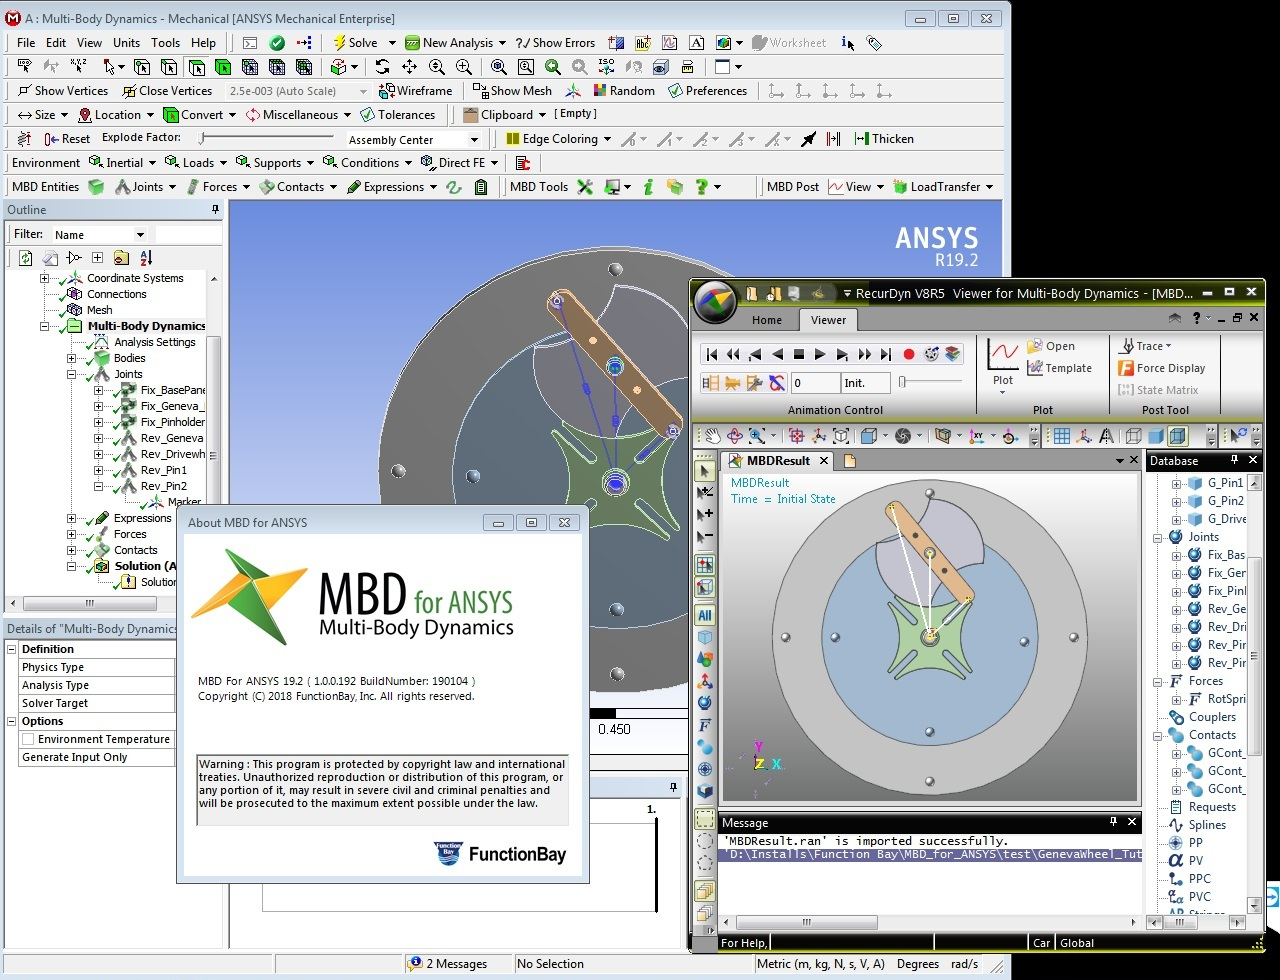 Working with FunctionBay Multi-Body Dynamics for ANSYS 19.2 full